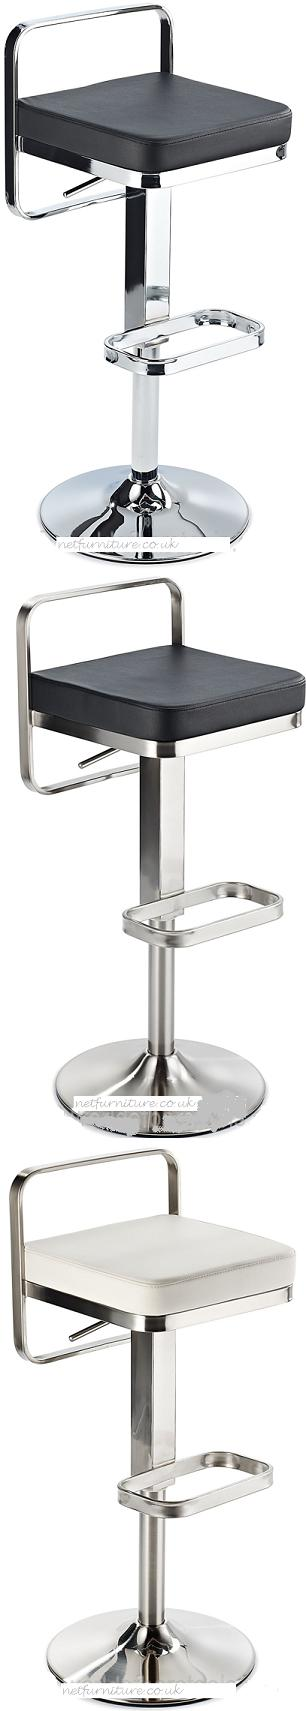 Sol Kitchen Bar Stool Height Adjustable Chrome or Brushed